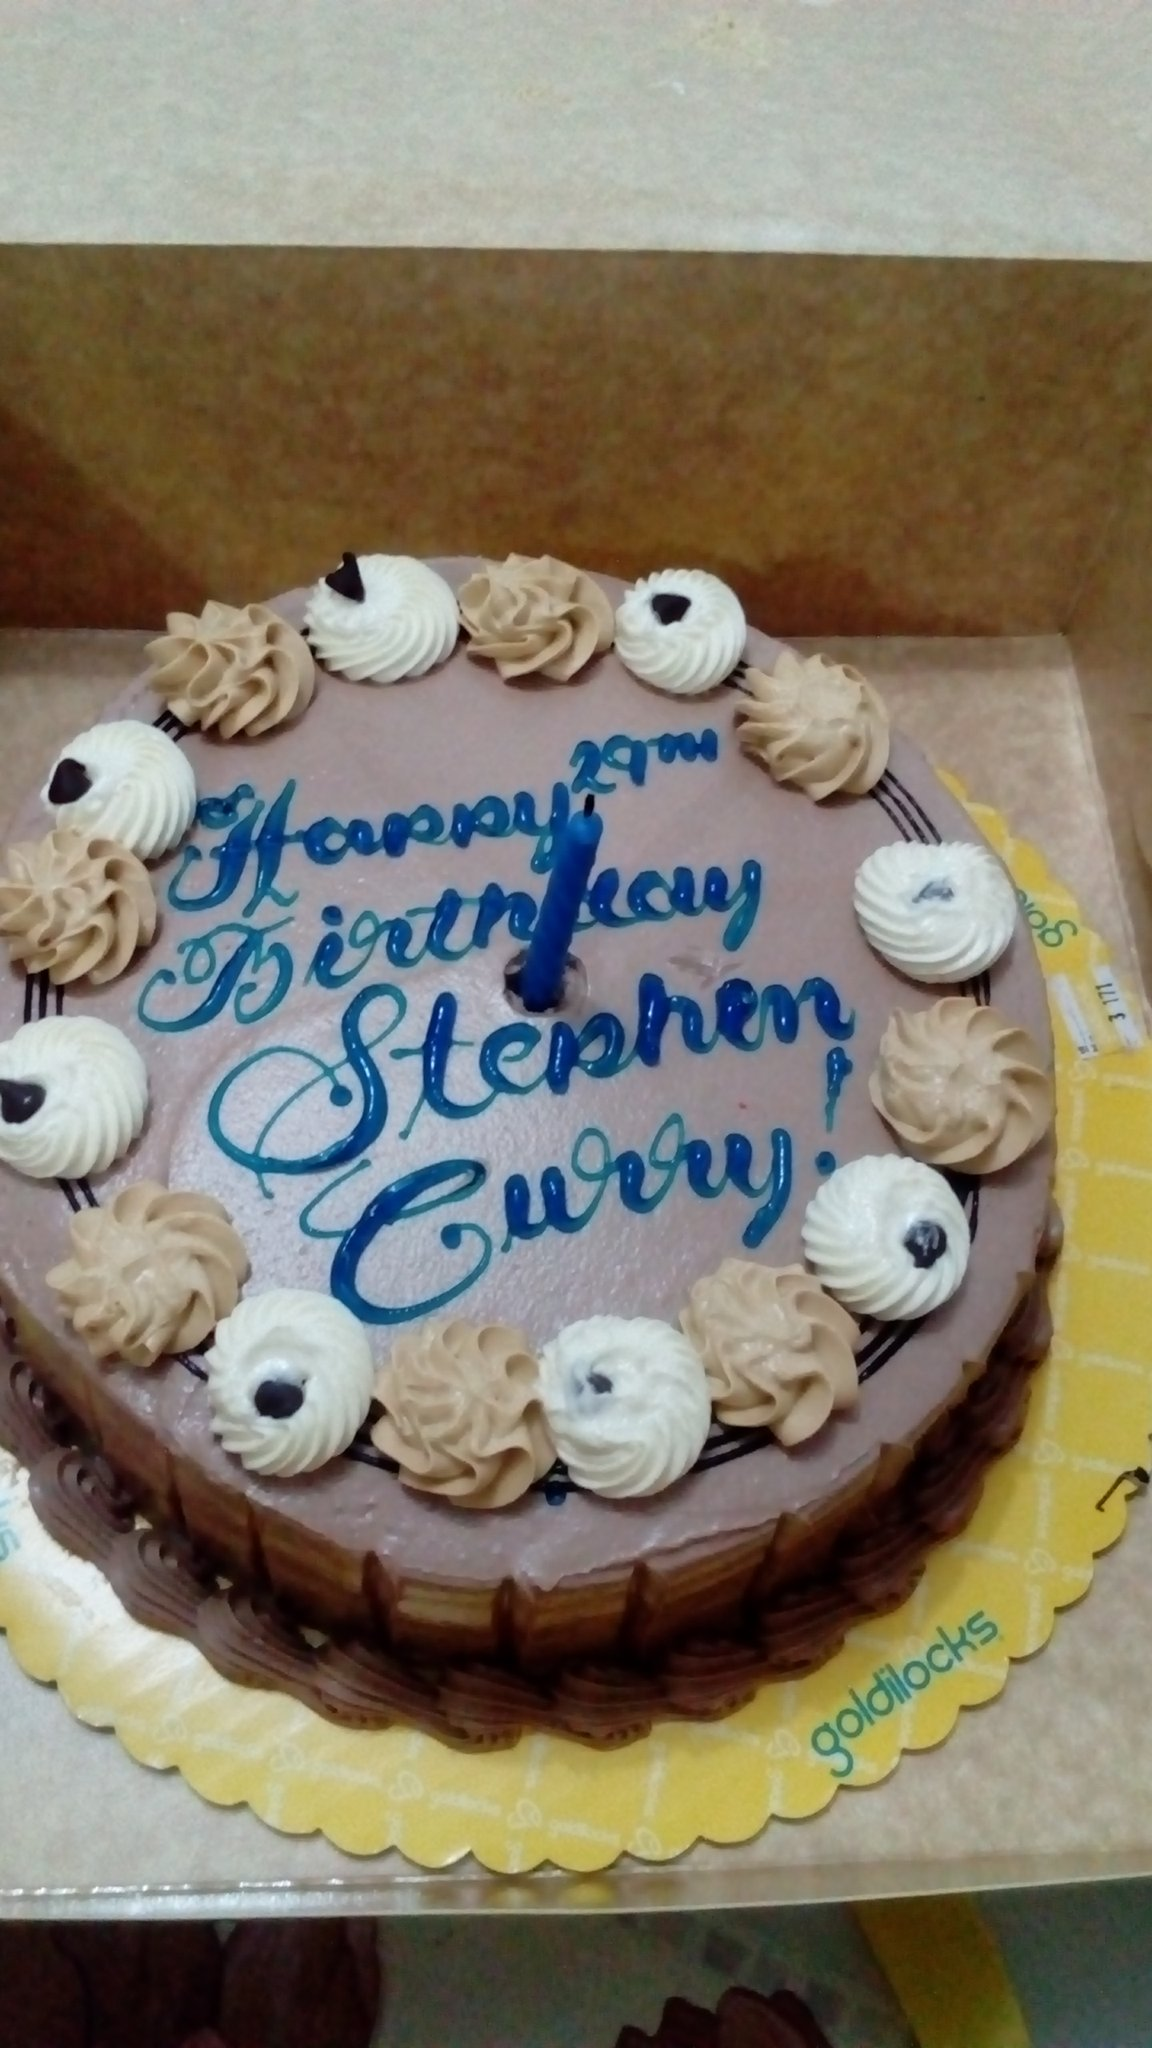 Stephen curry\bday! Happy bday Stephen! We love you !